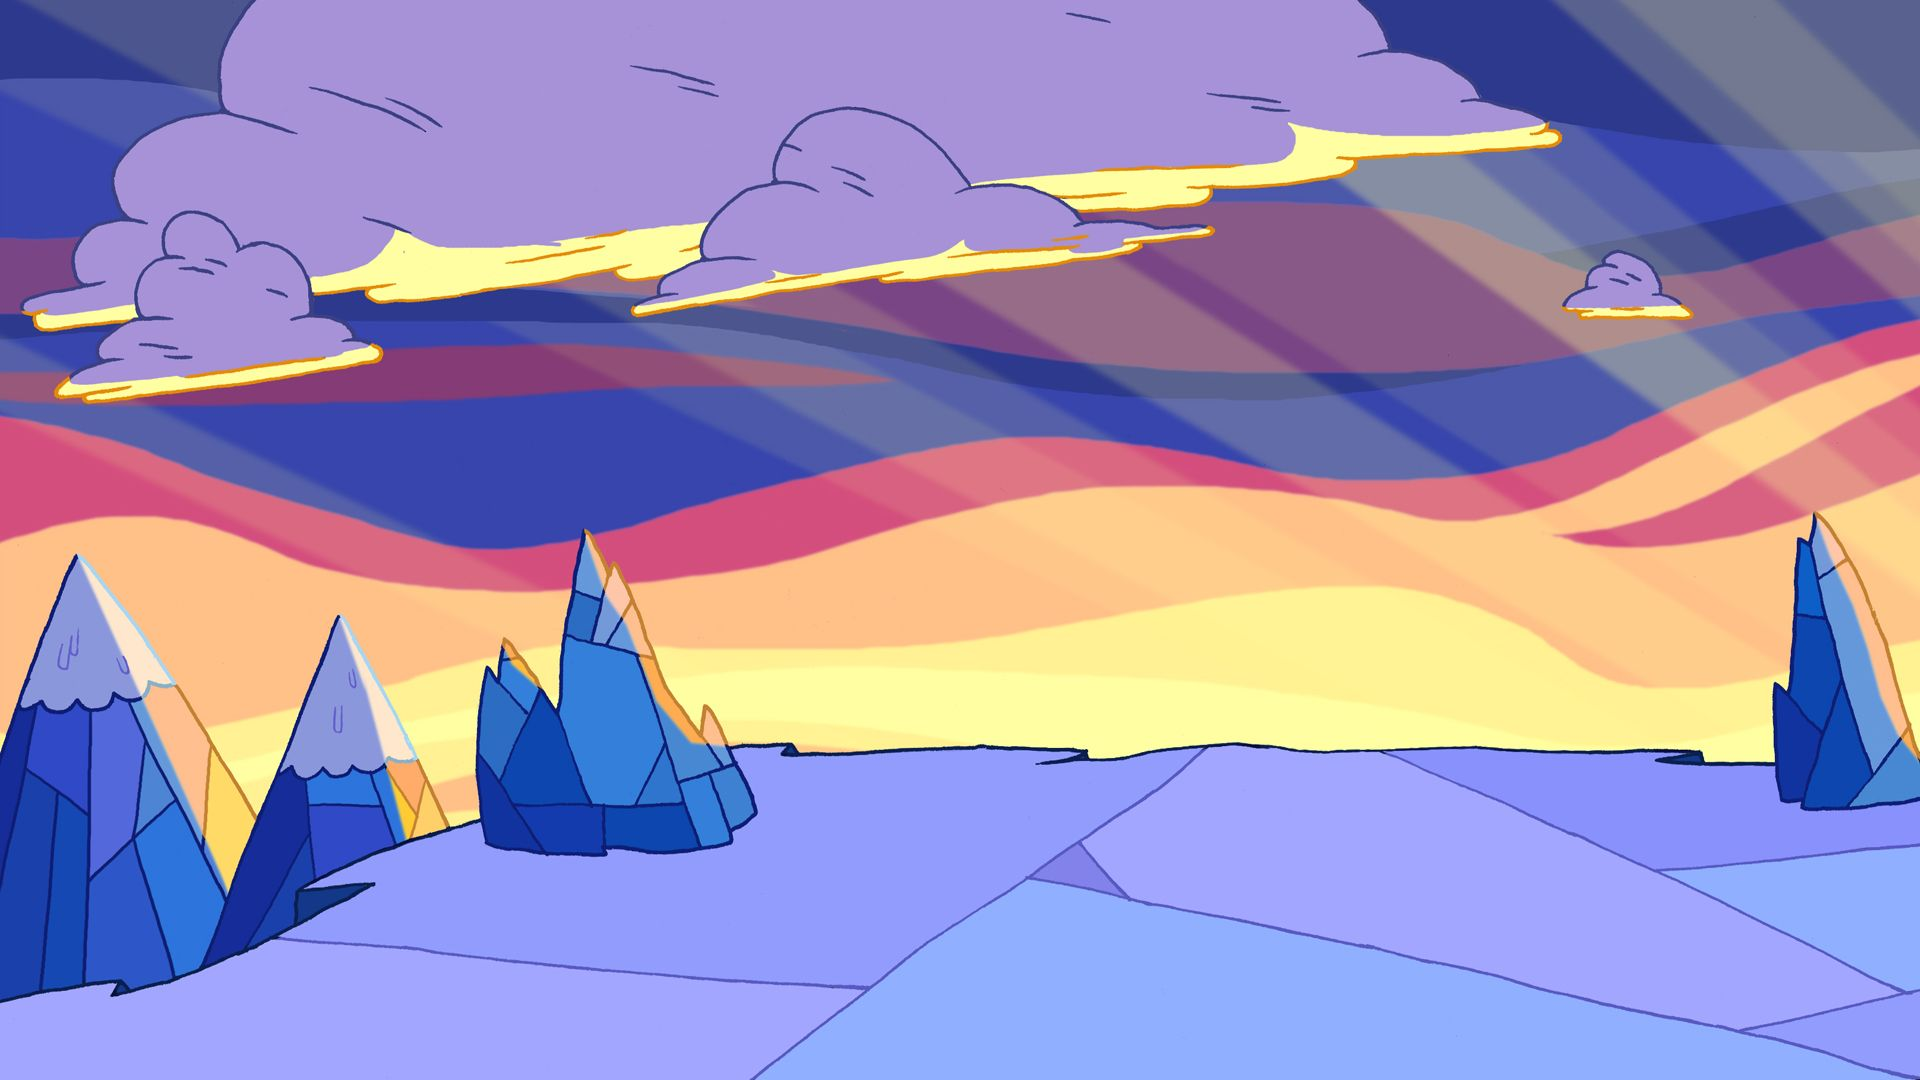 Adventure Time Landscape Hd Wallpaper 1920x1080 Adventure Time Background Adventure Time Wallpaper Adventure Time